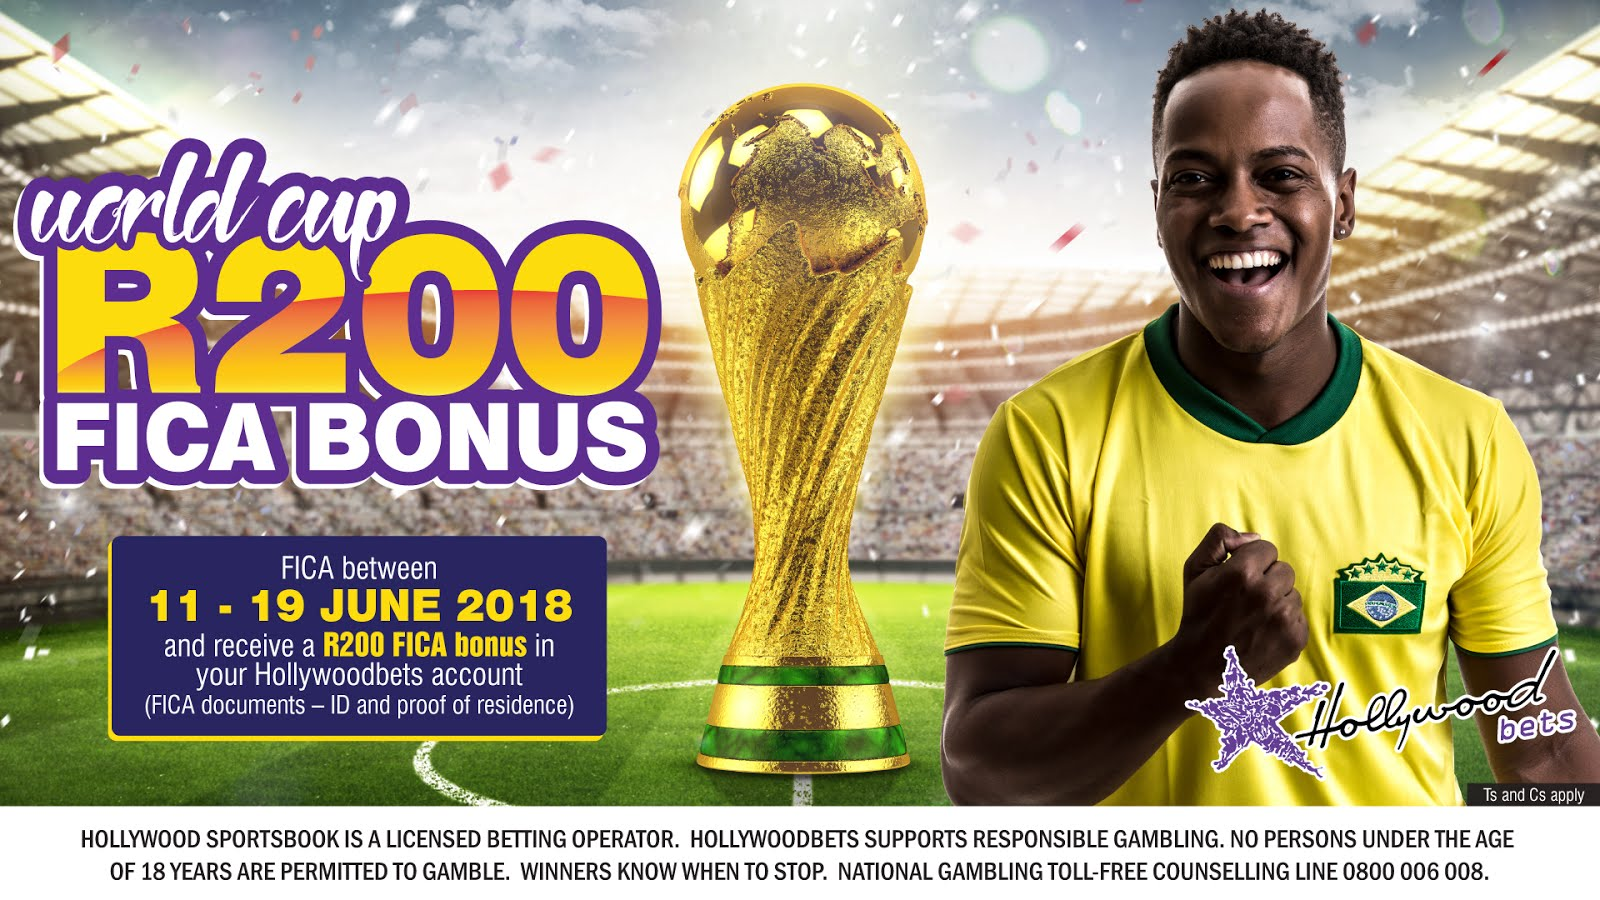 World Cup R200 FICA Bonus - Hollywoodbets